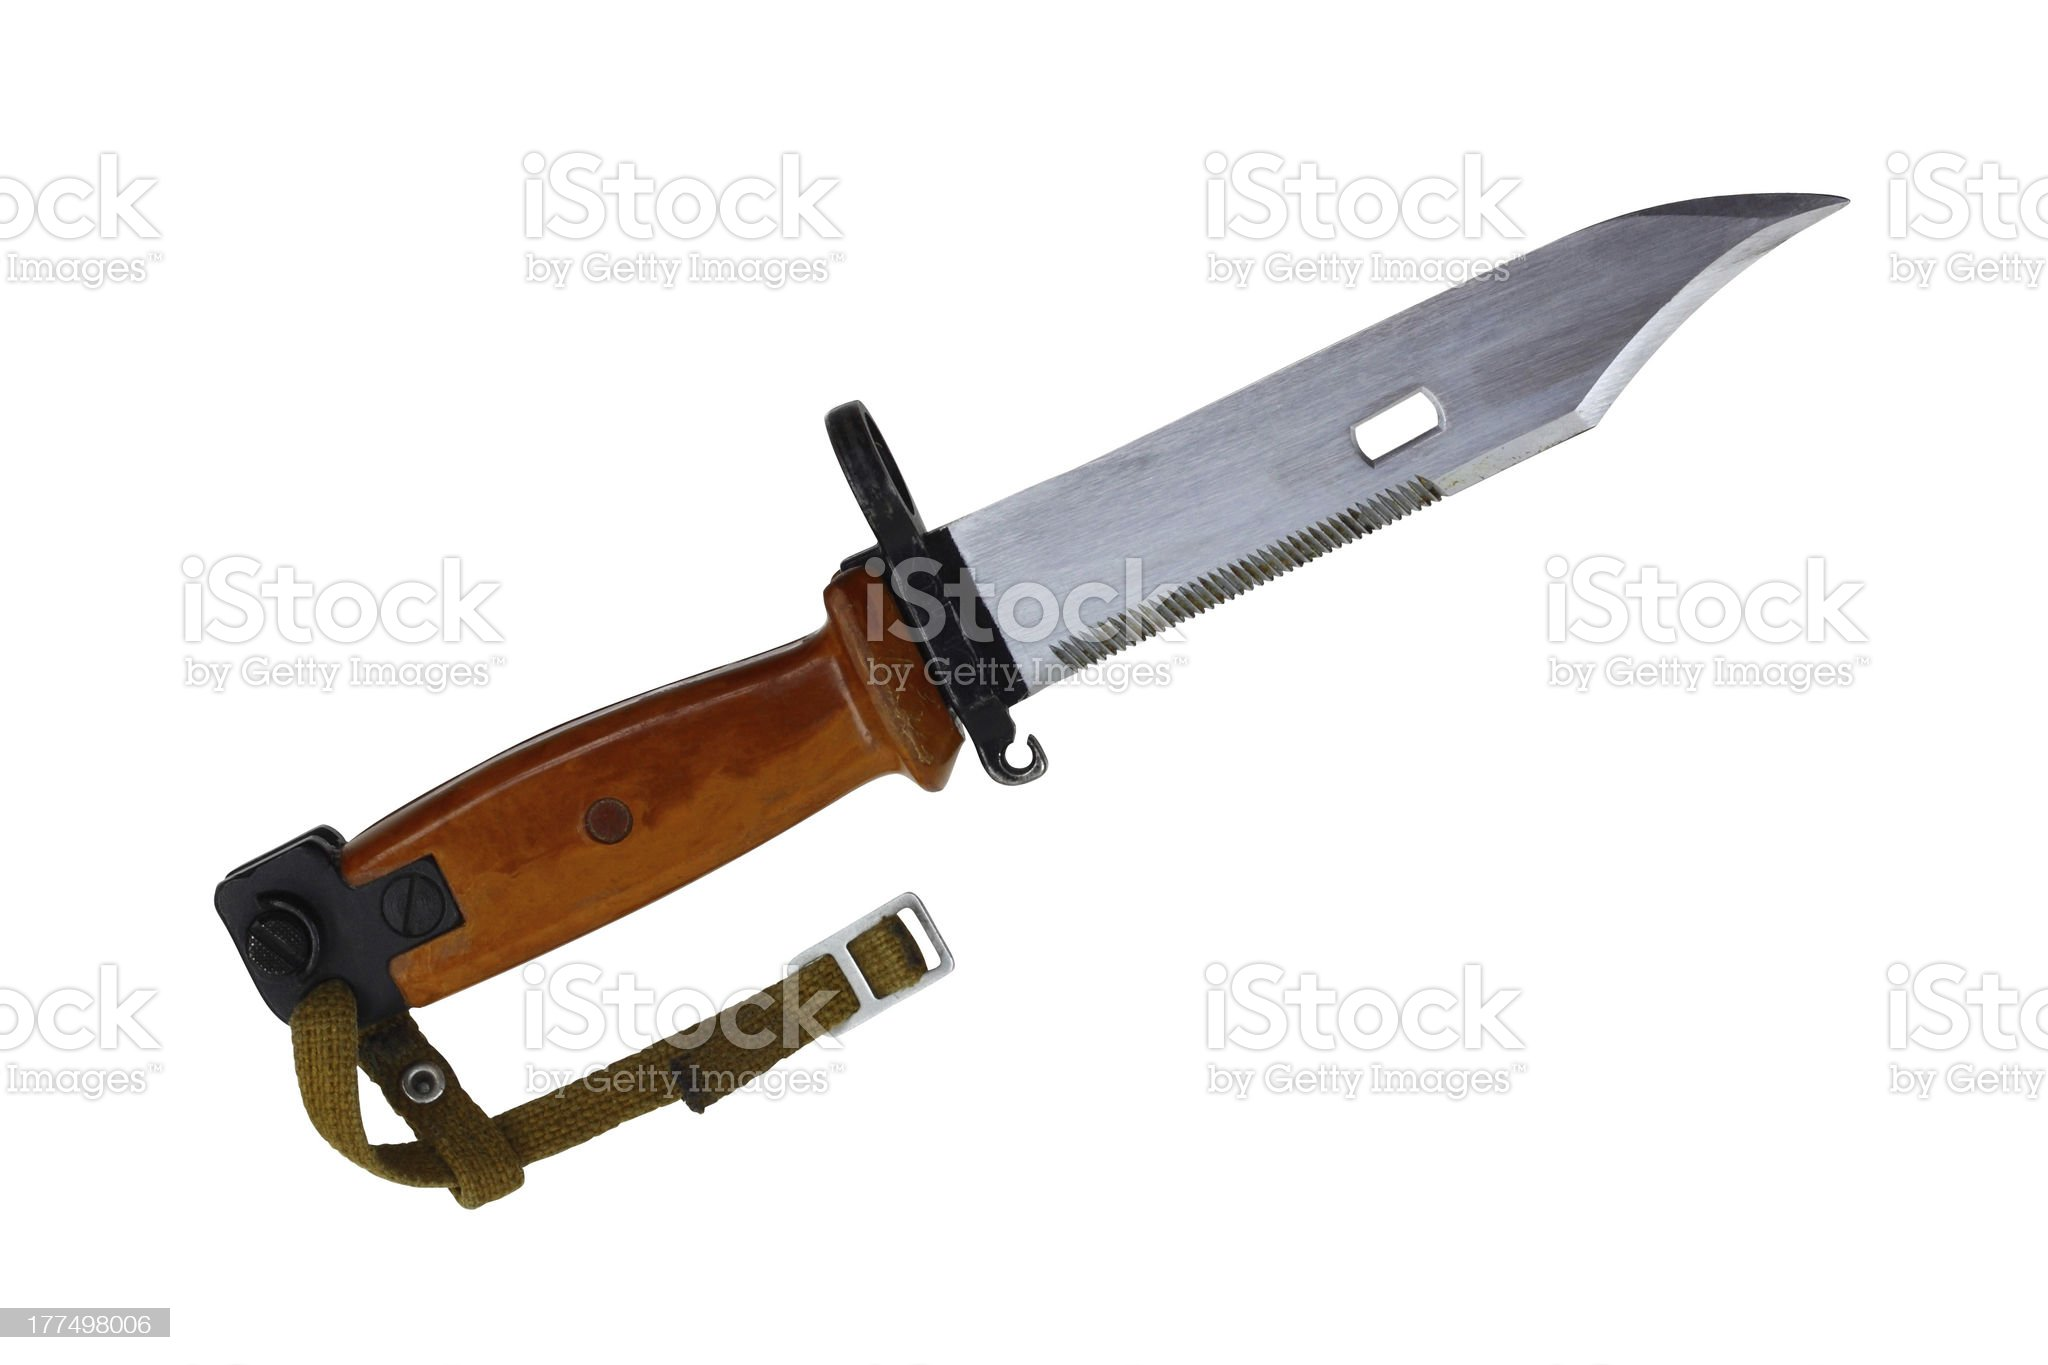 Bayonet knife royalty-free stock photo